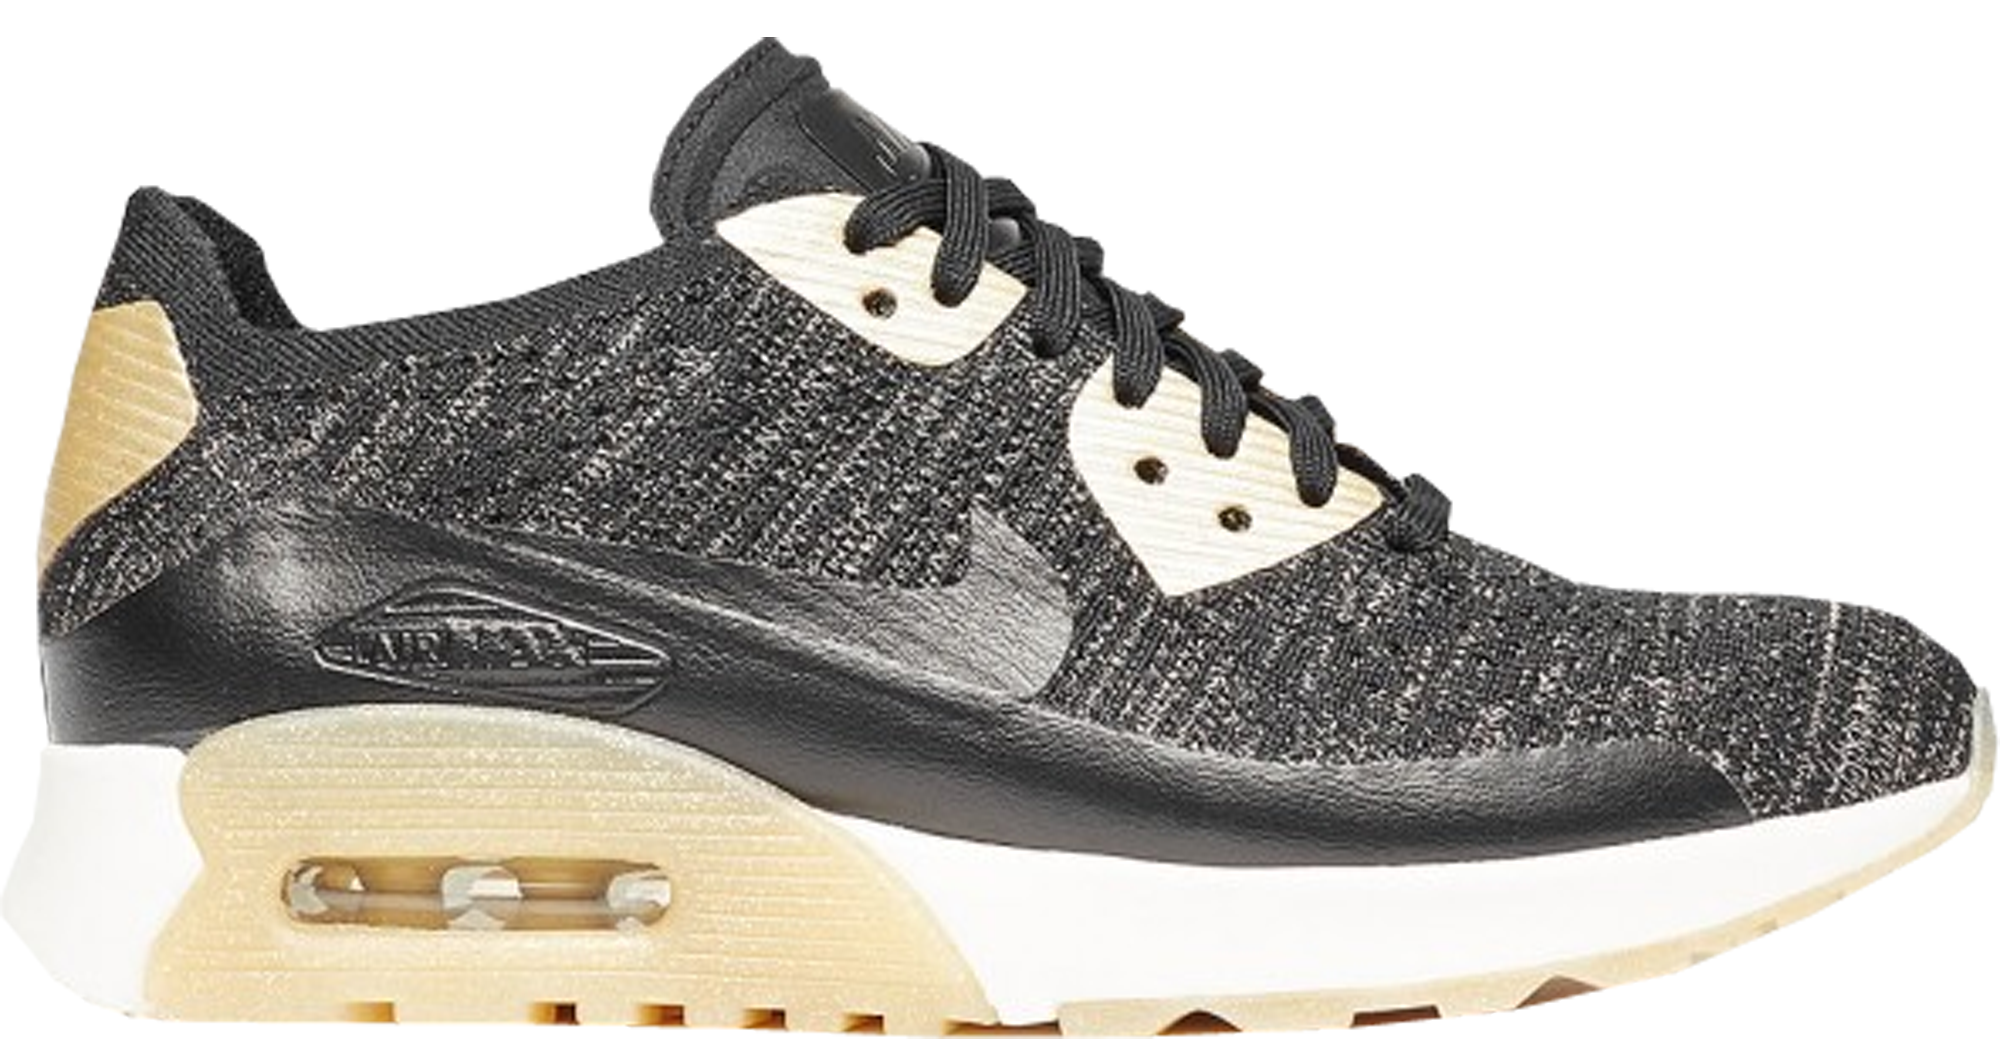 Nike Air Max 90 Premium Black Metallic Gold Releasing On